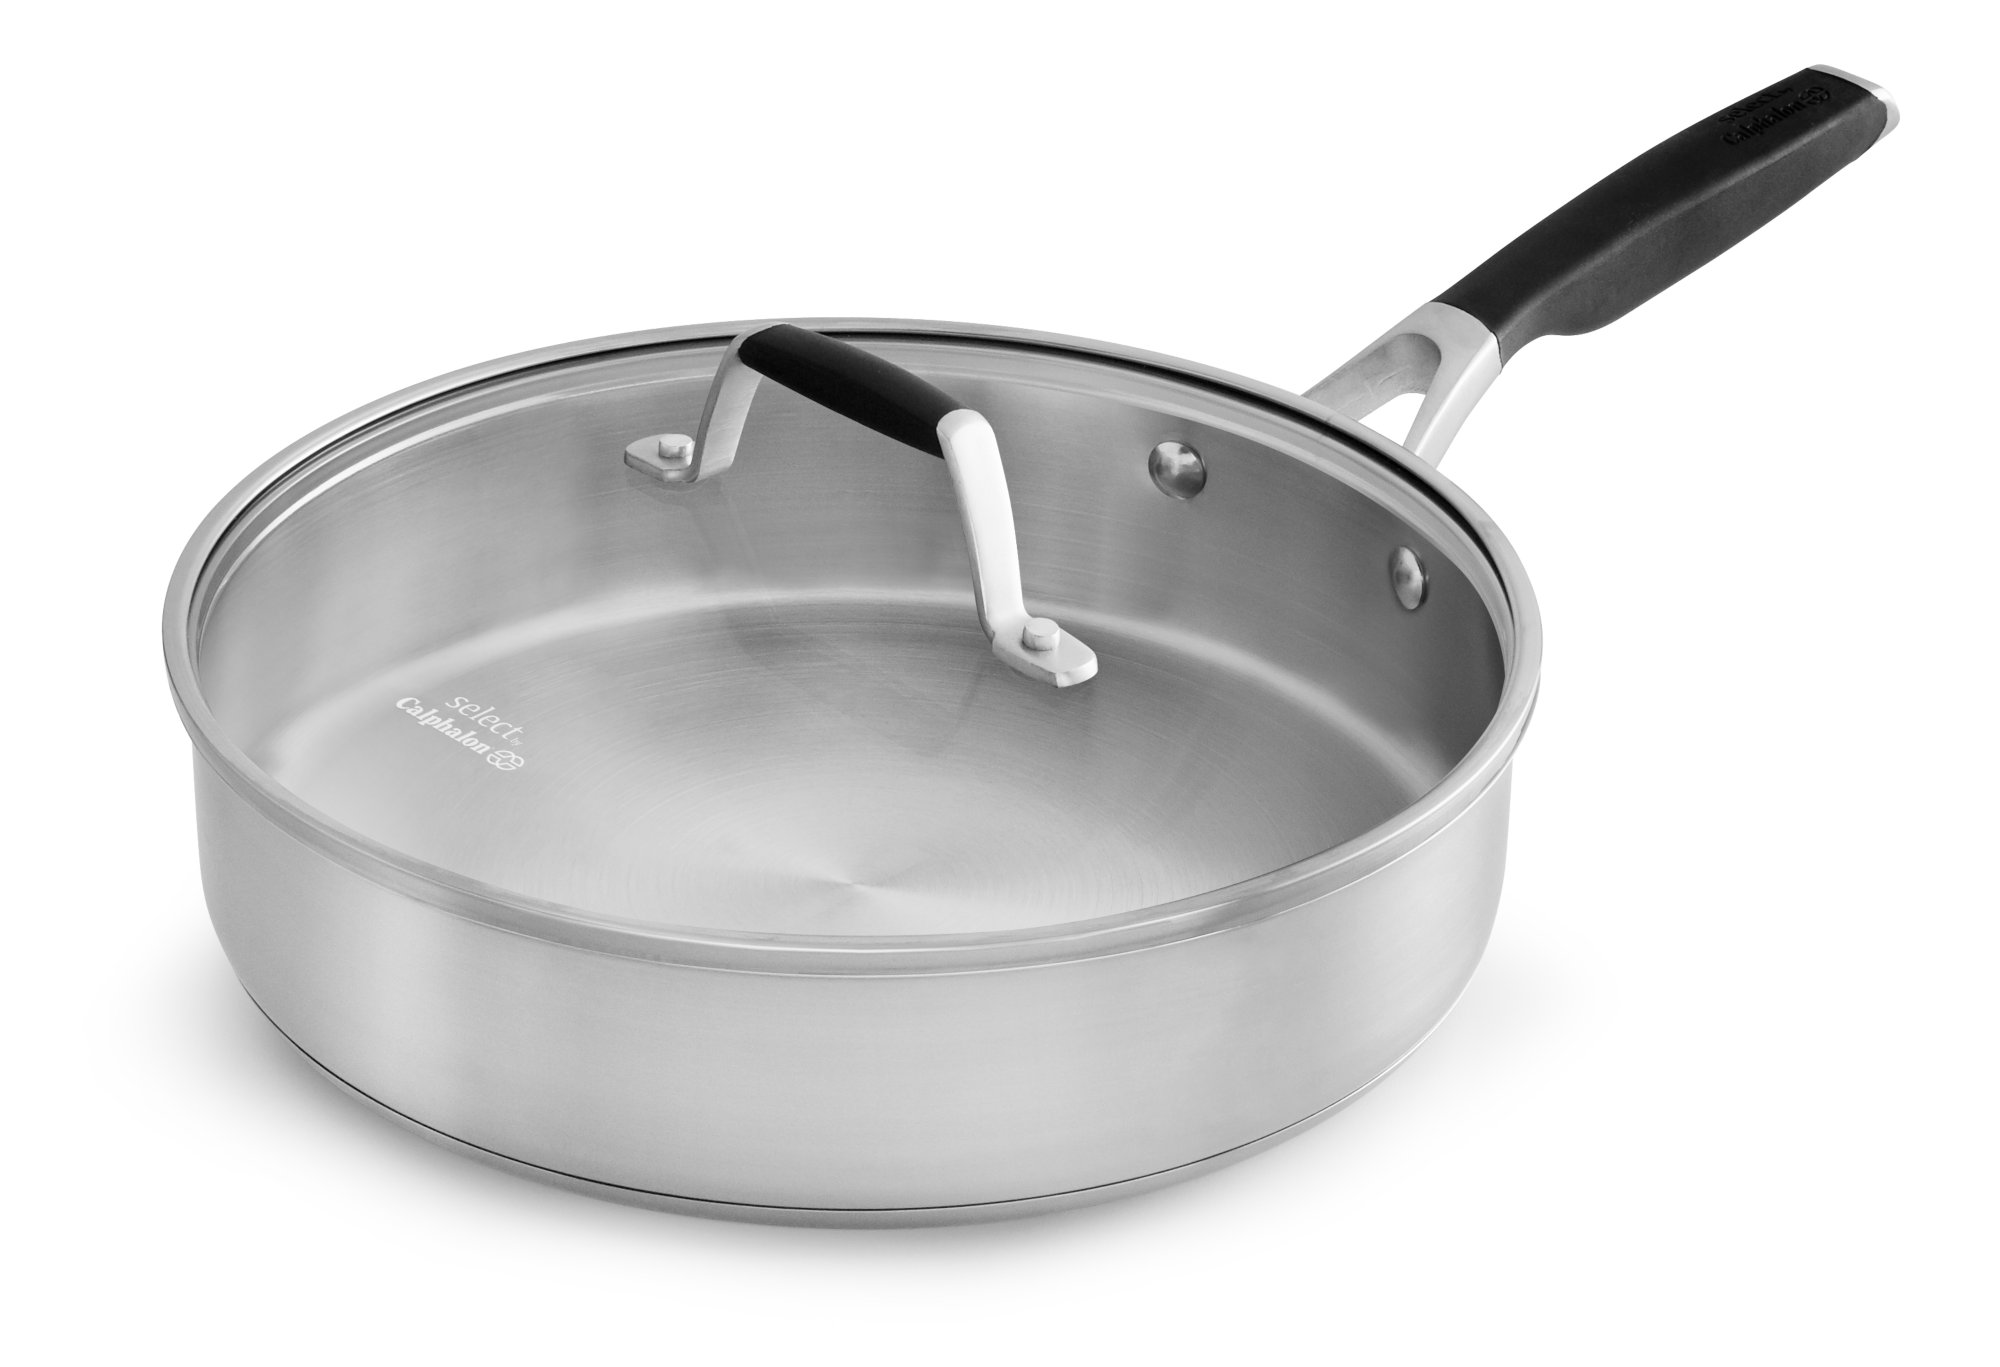 Select by Calphalon Stainless Steel 3-Quart Saute Pan